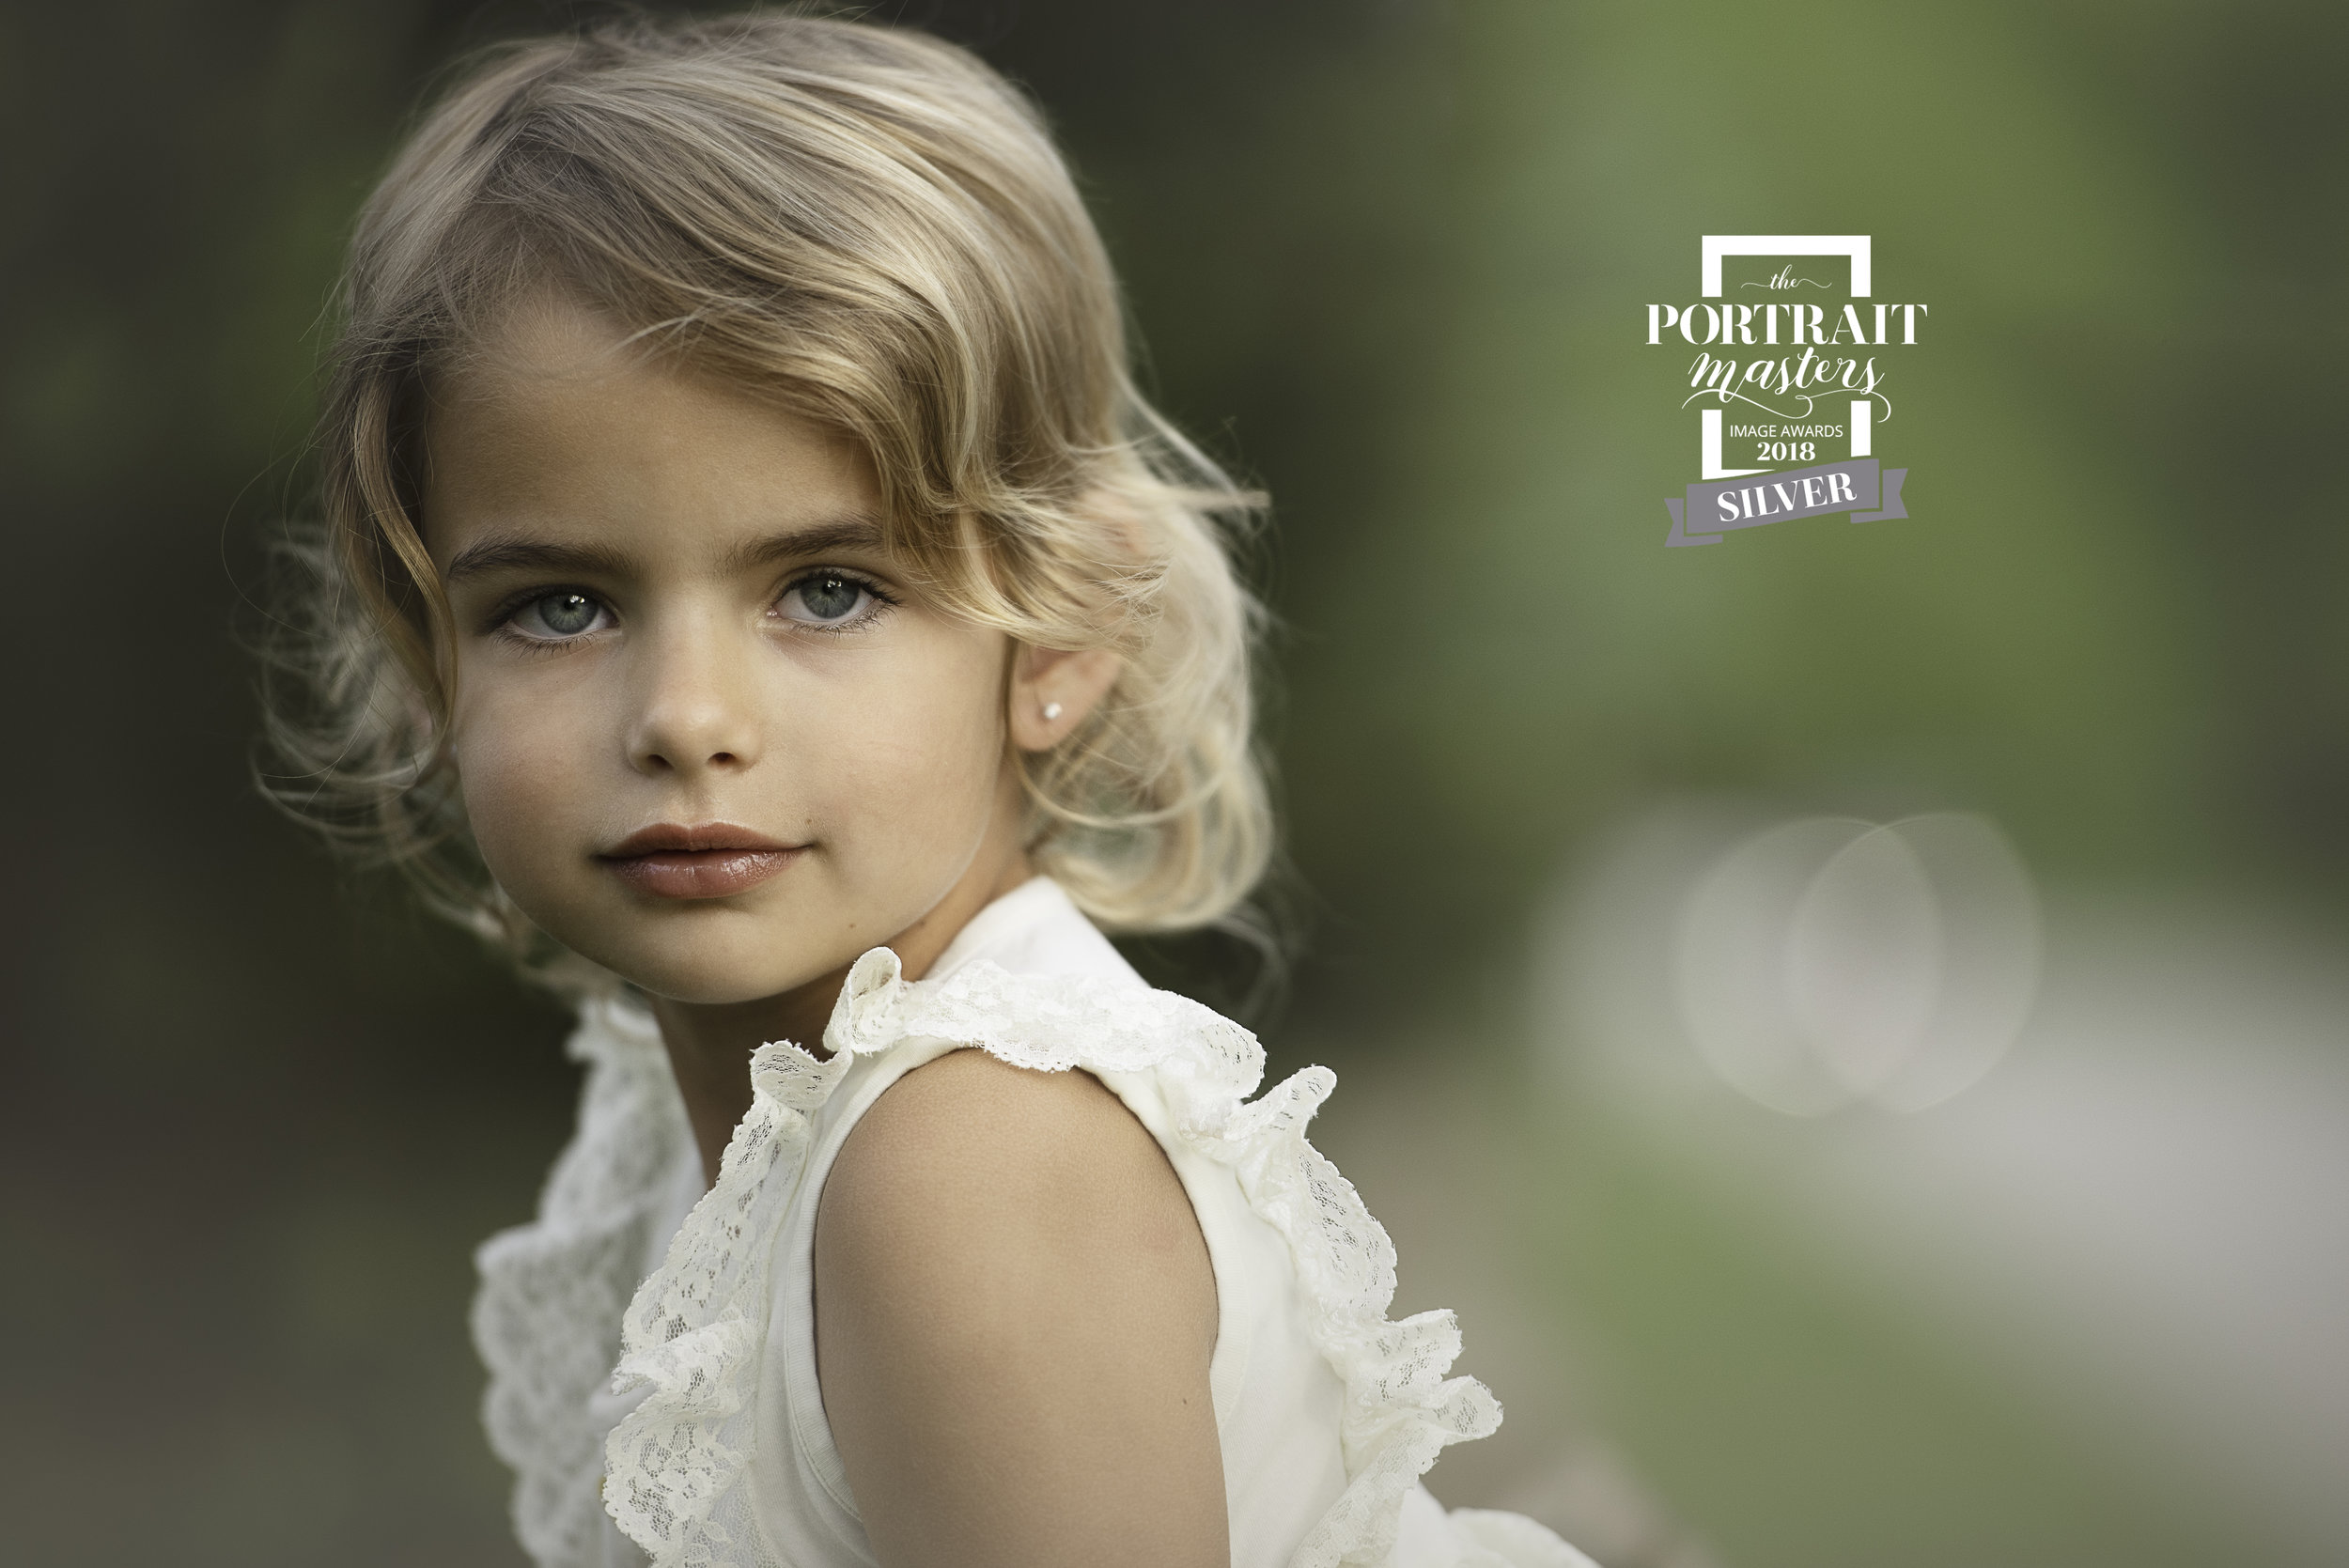 Our Featured Blog Post - JPP was awarded TWO Silver Awards in the last round of The Portrait Masters..